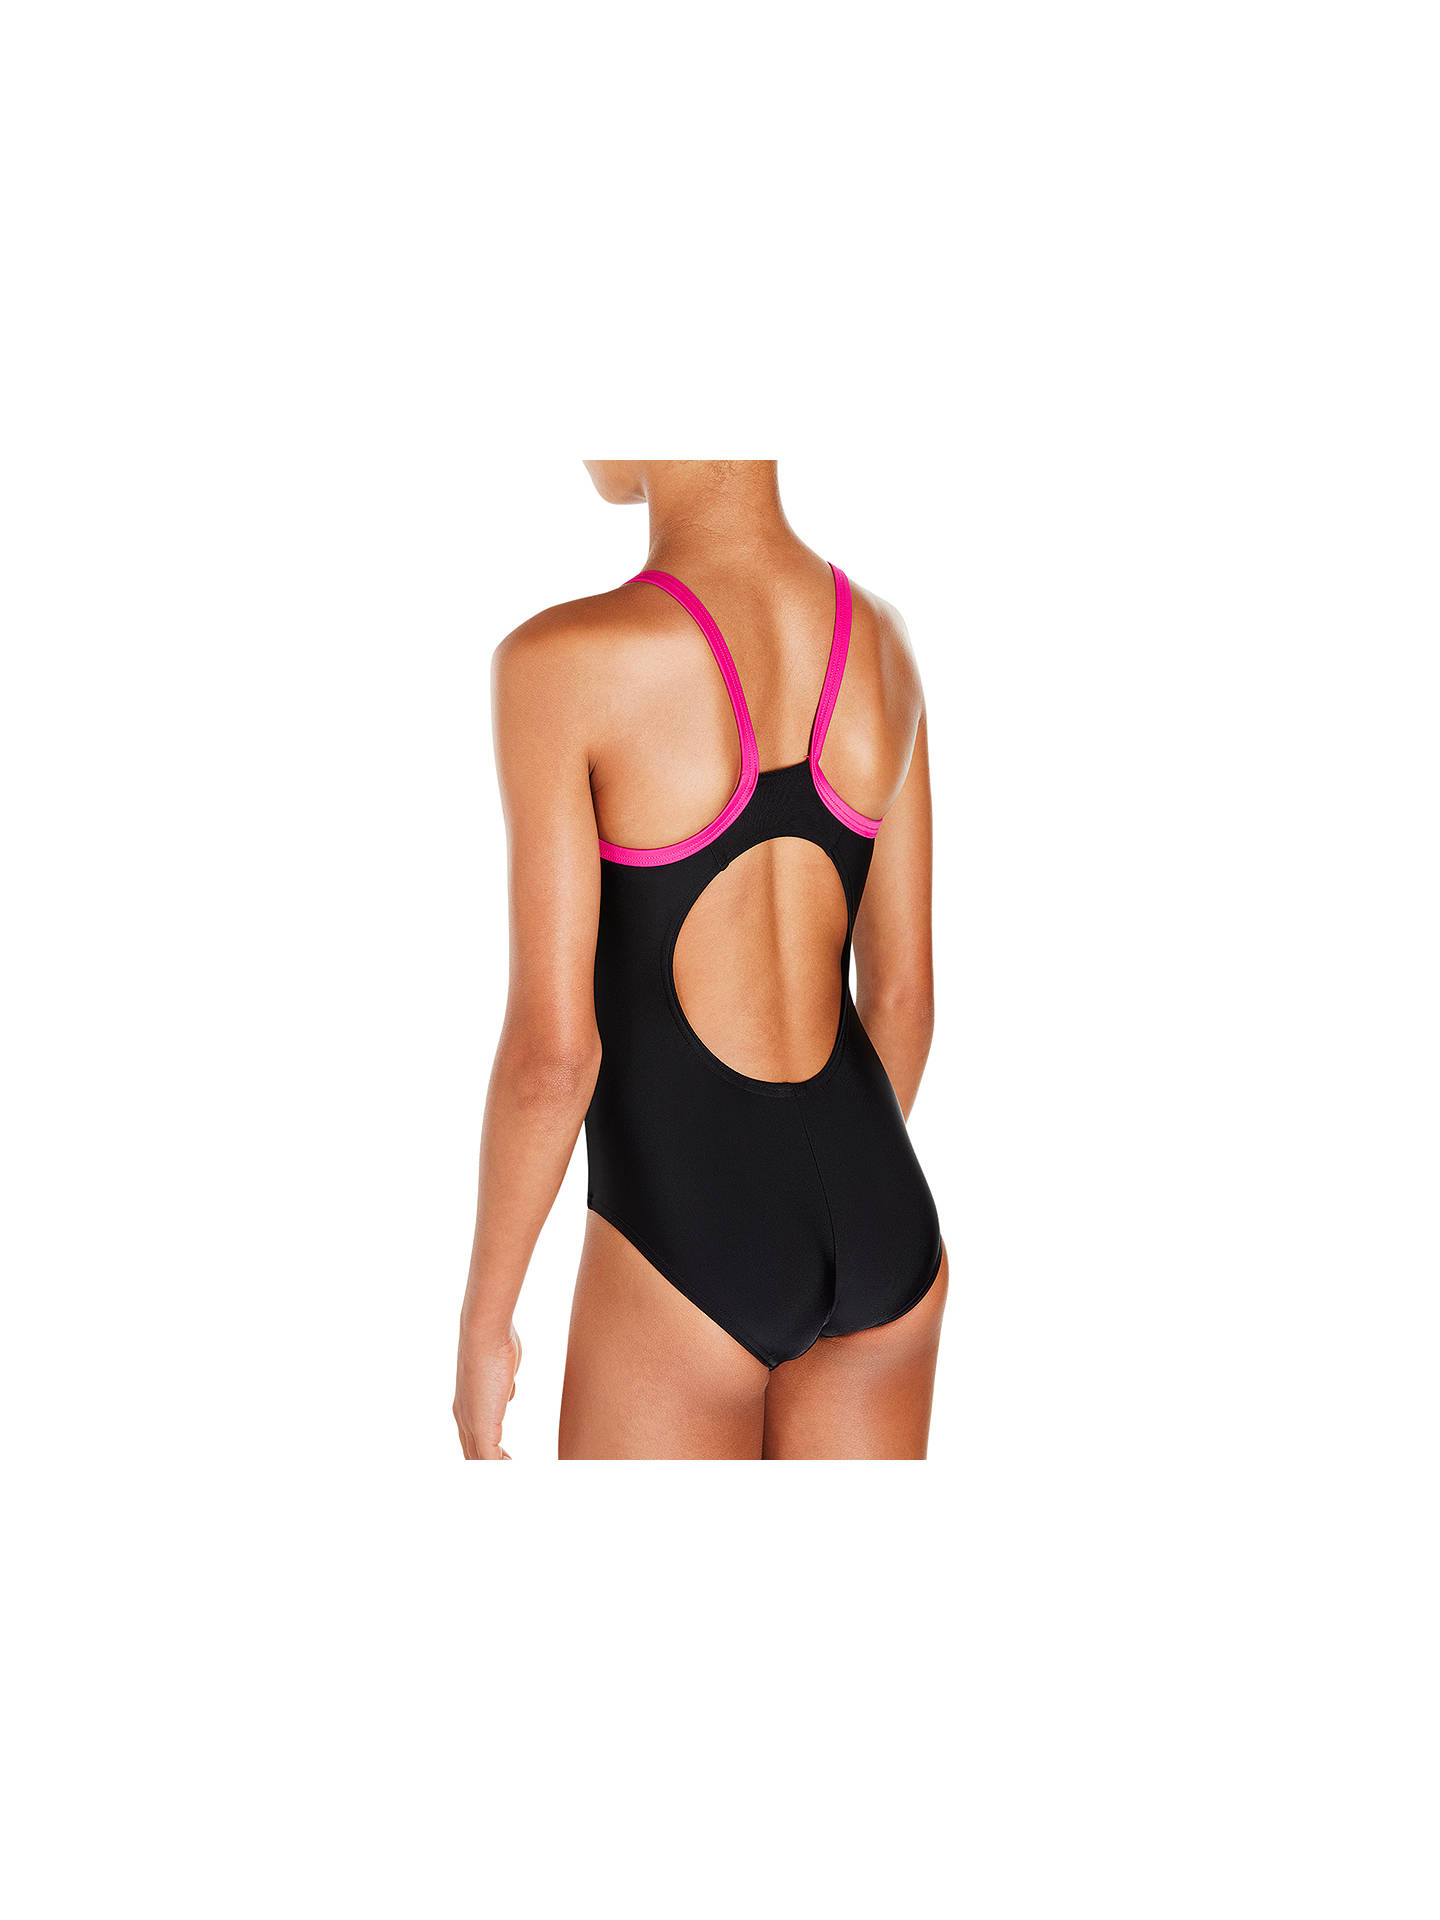 "Buy Speedo Girls' Speedo Gala Thinstrap Muscleback Swimsuit, Black/Pink, Chest 24"" Online at johnlewis.com"